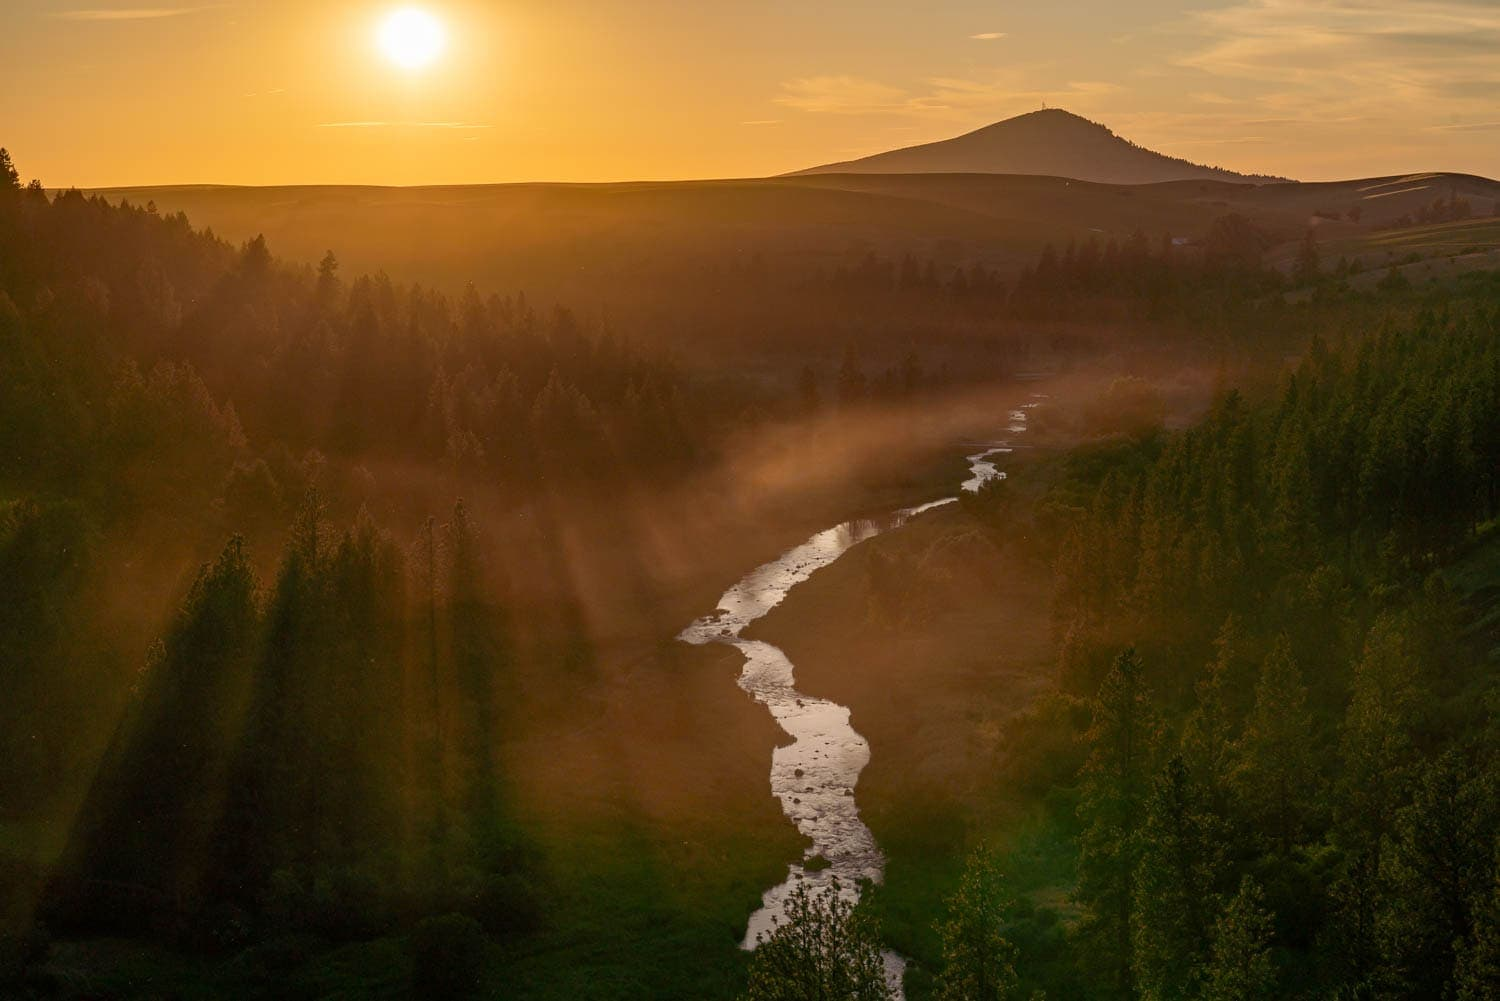 Sunset over Palouse River during a photography workshop